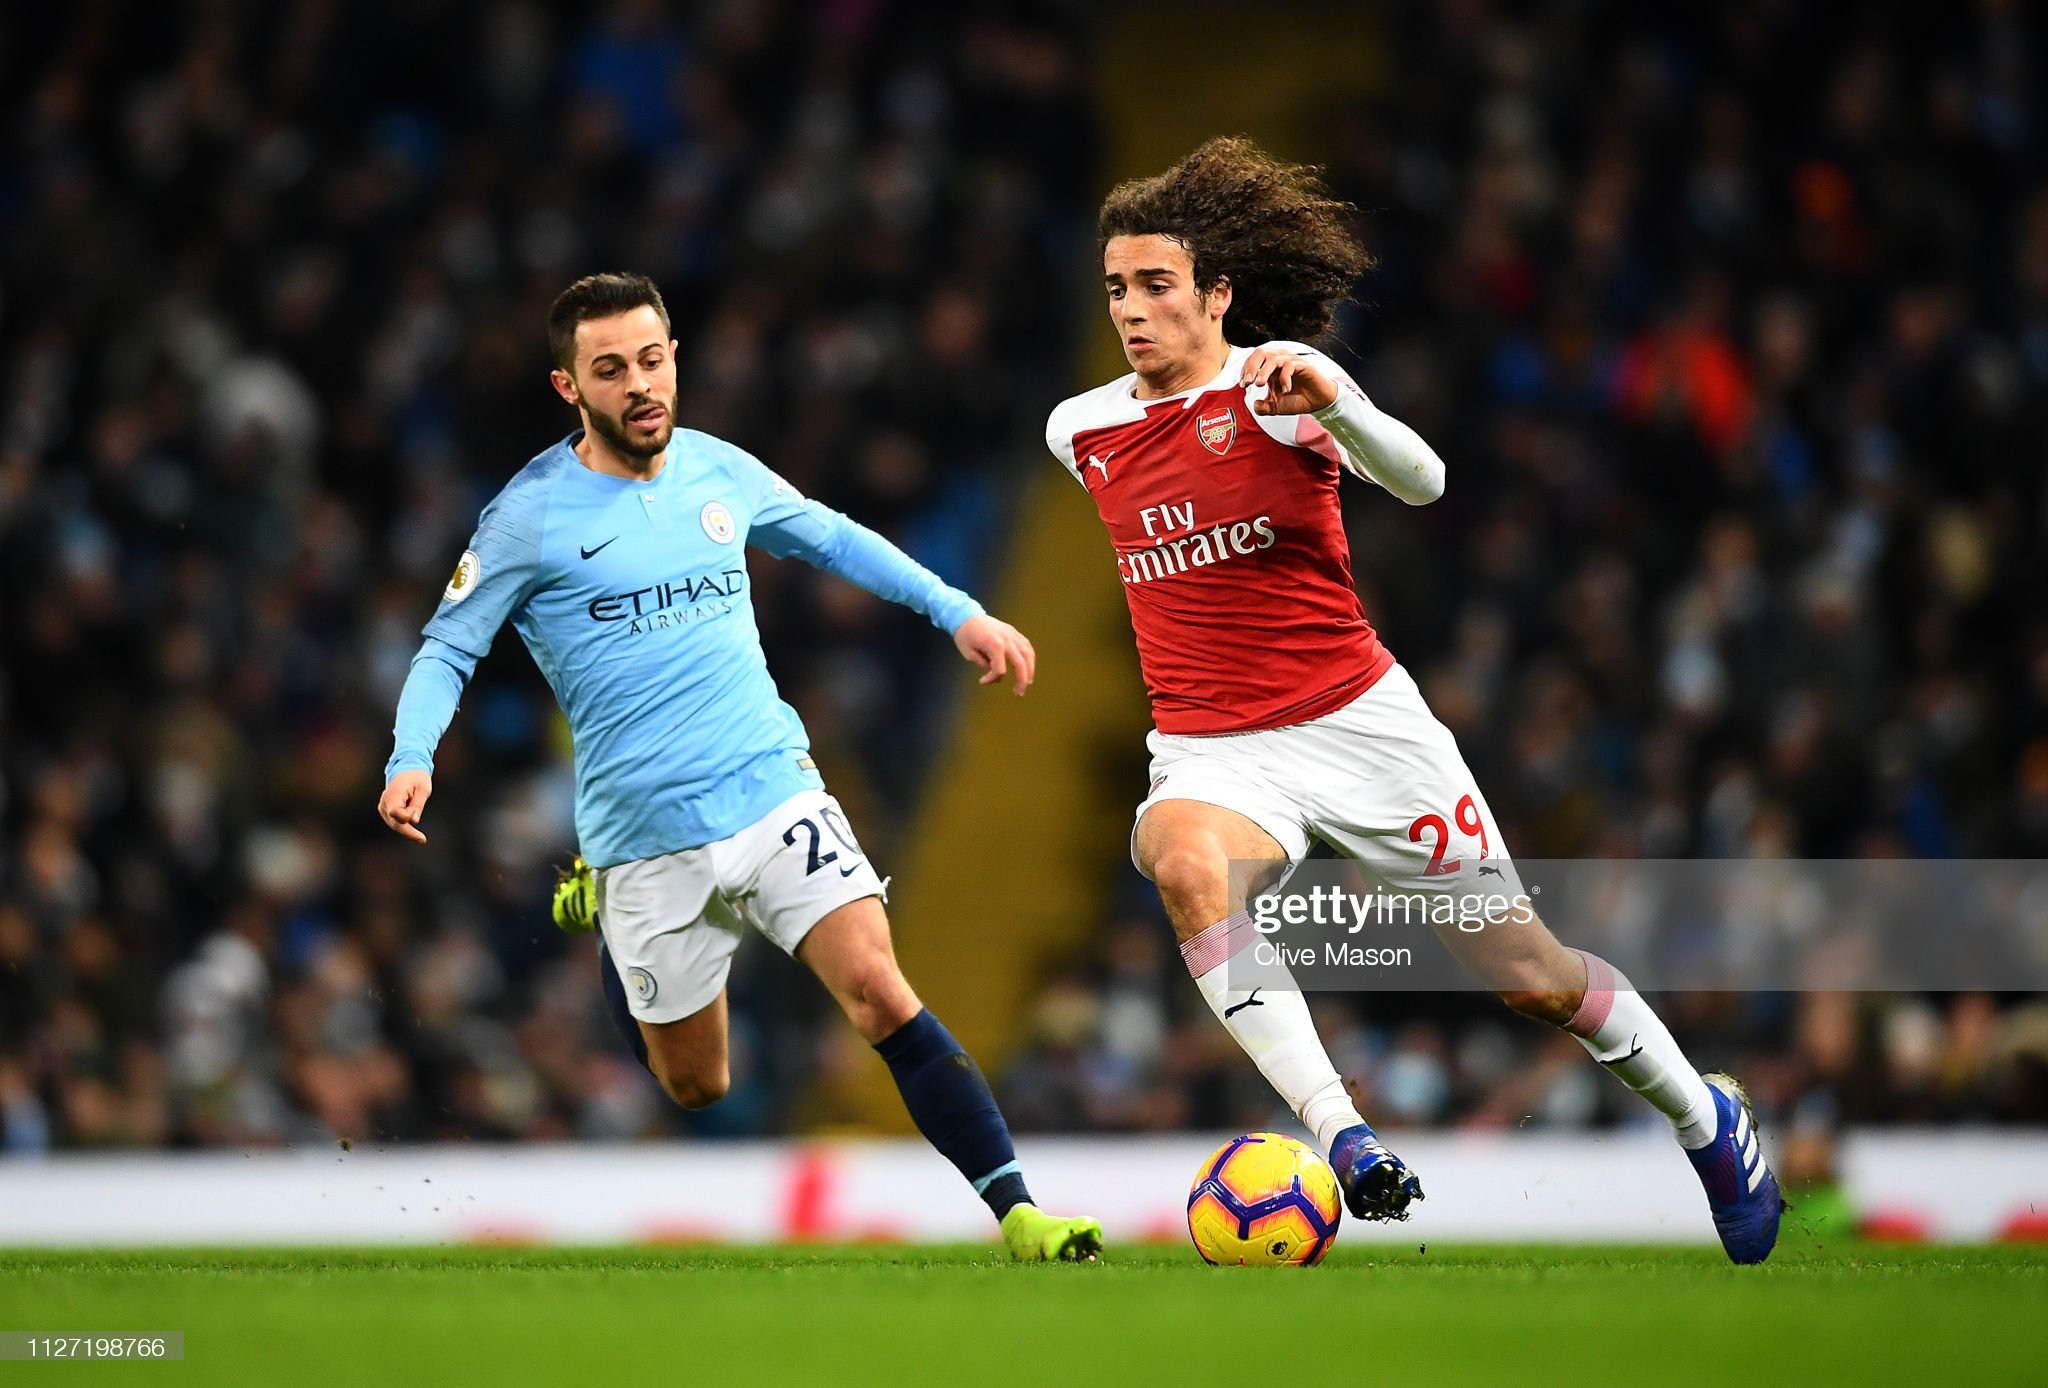 Arsenal v Manchester City preview, prediction and odds